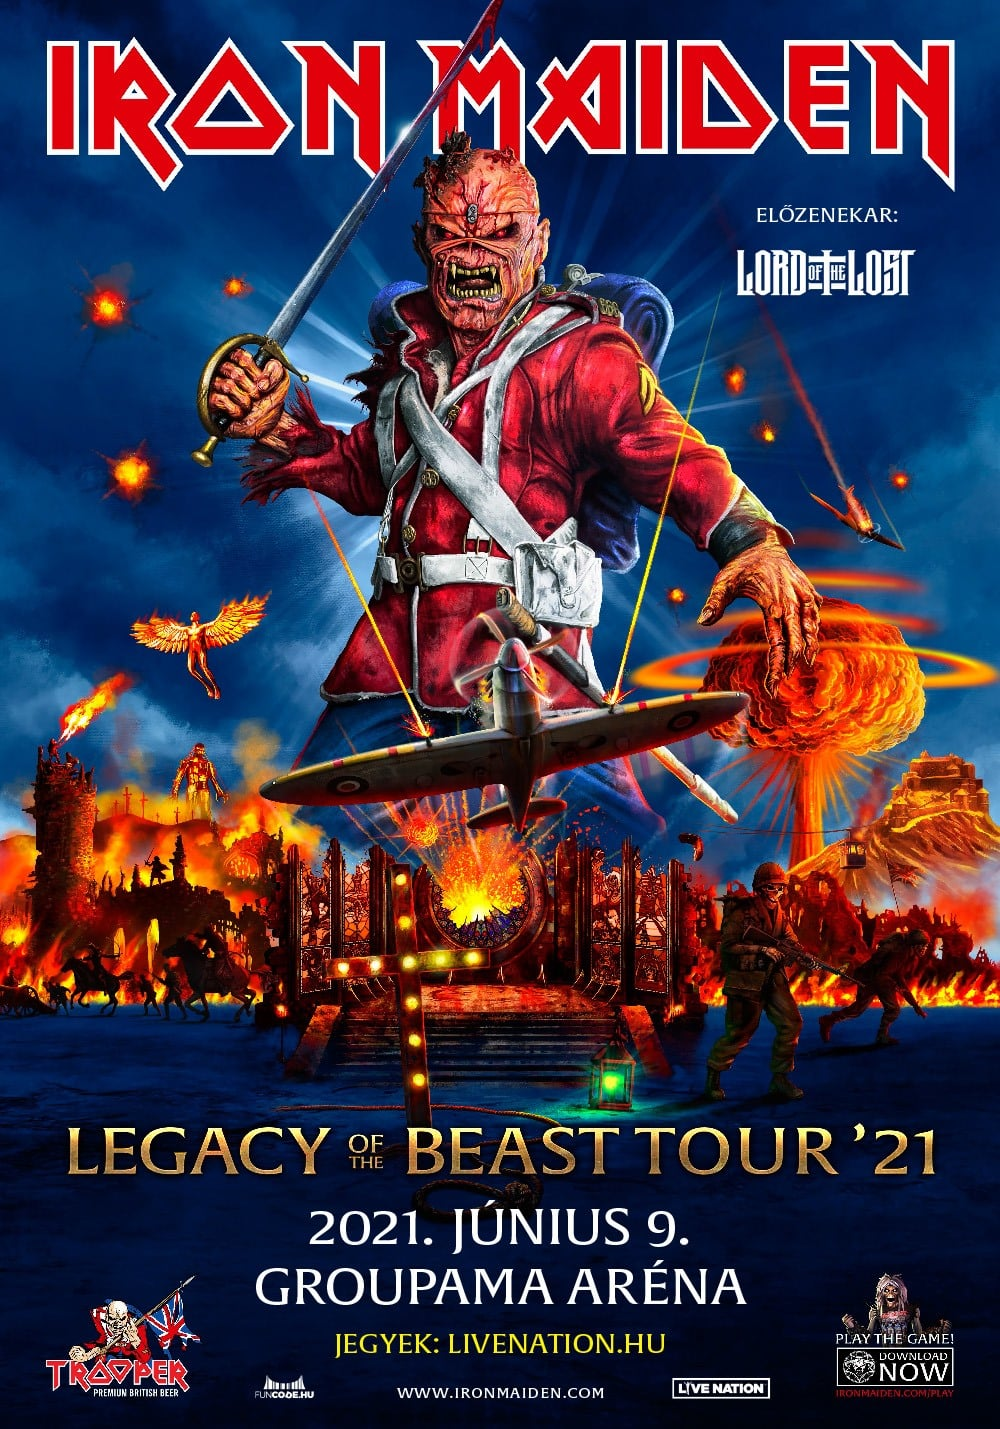 Legacy of the Beast Tour '21